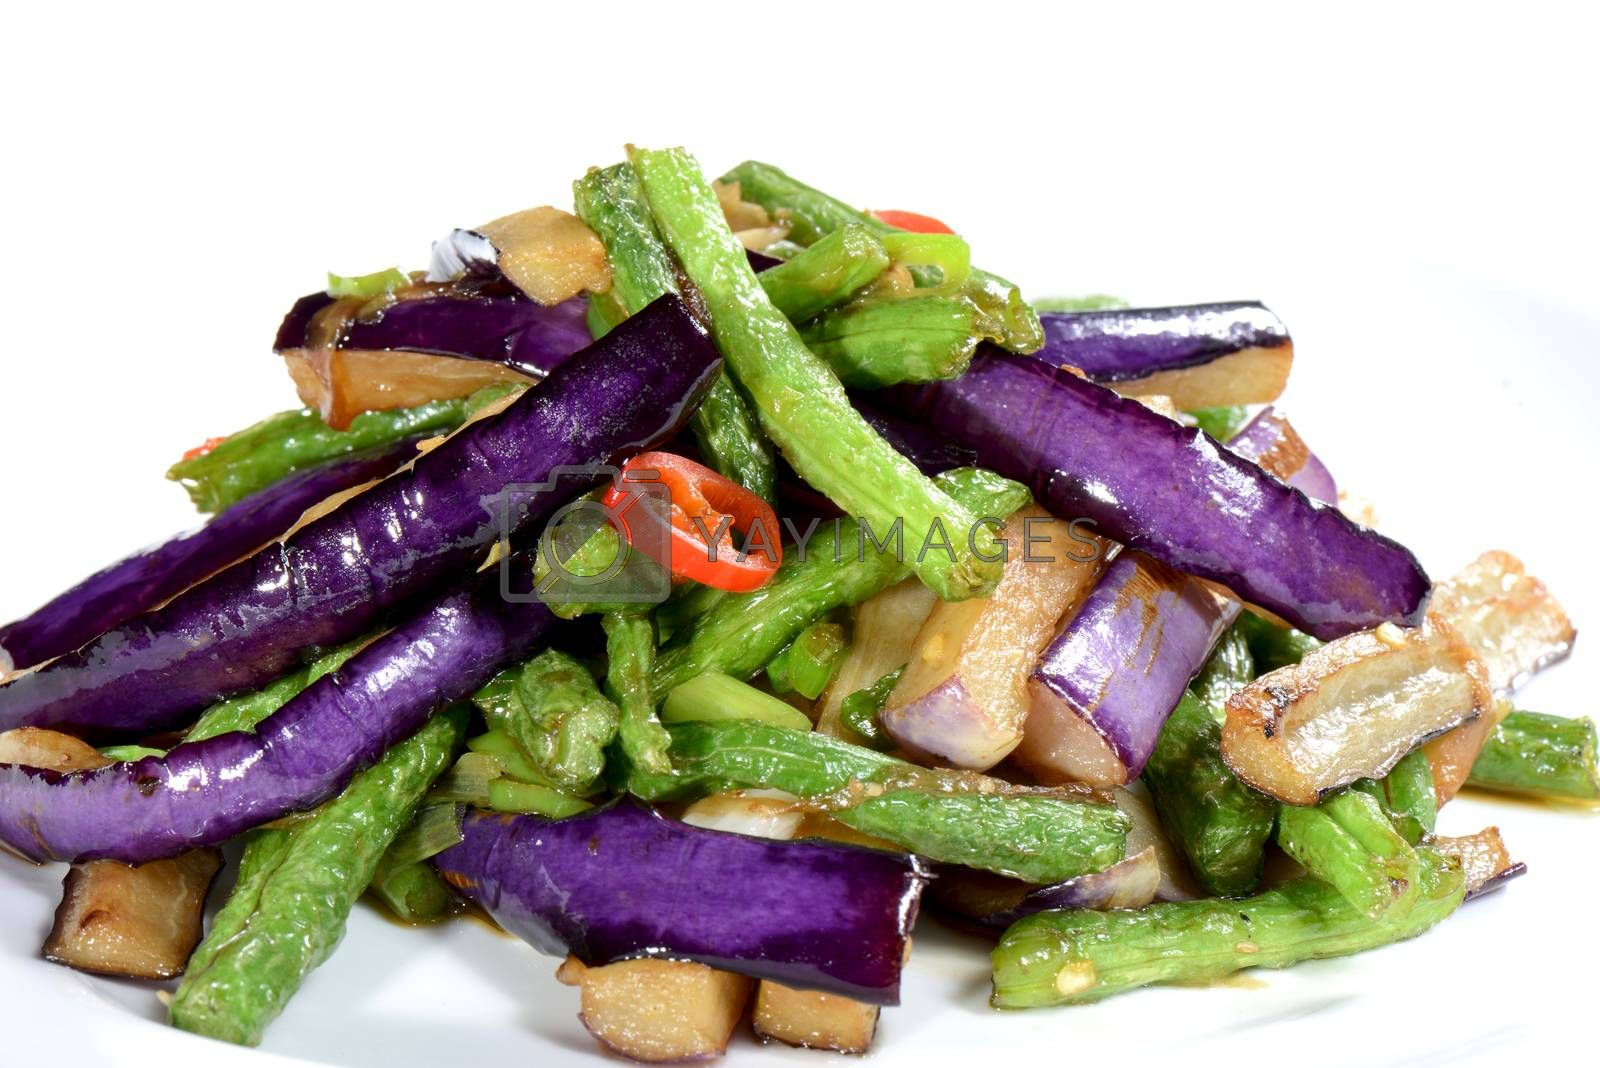 Royalty free image of Chinese Food: Fried eggplant slices by bbbar